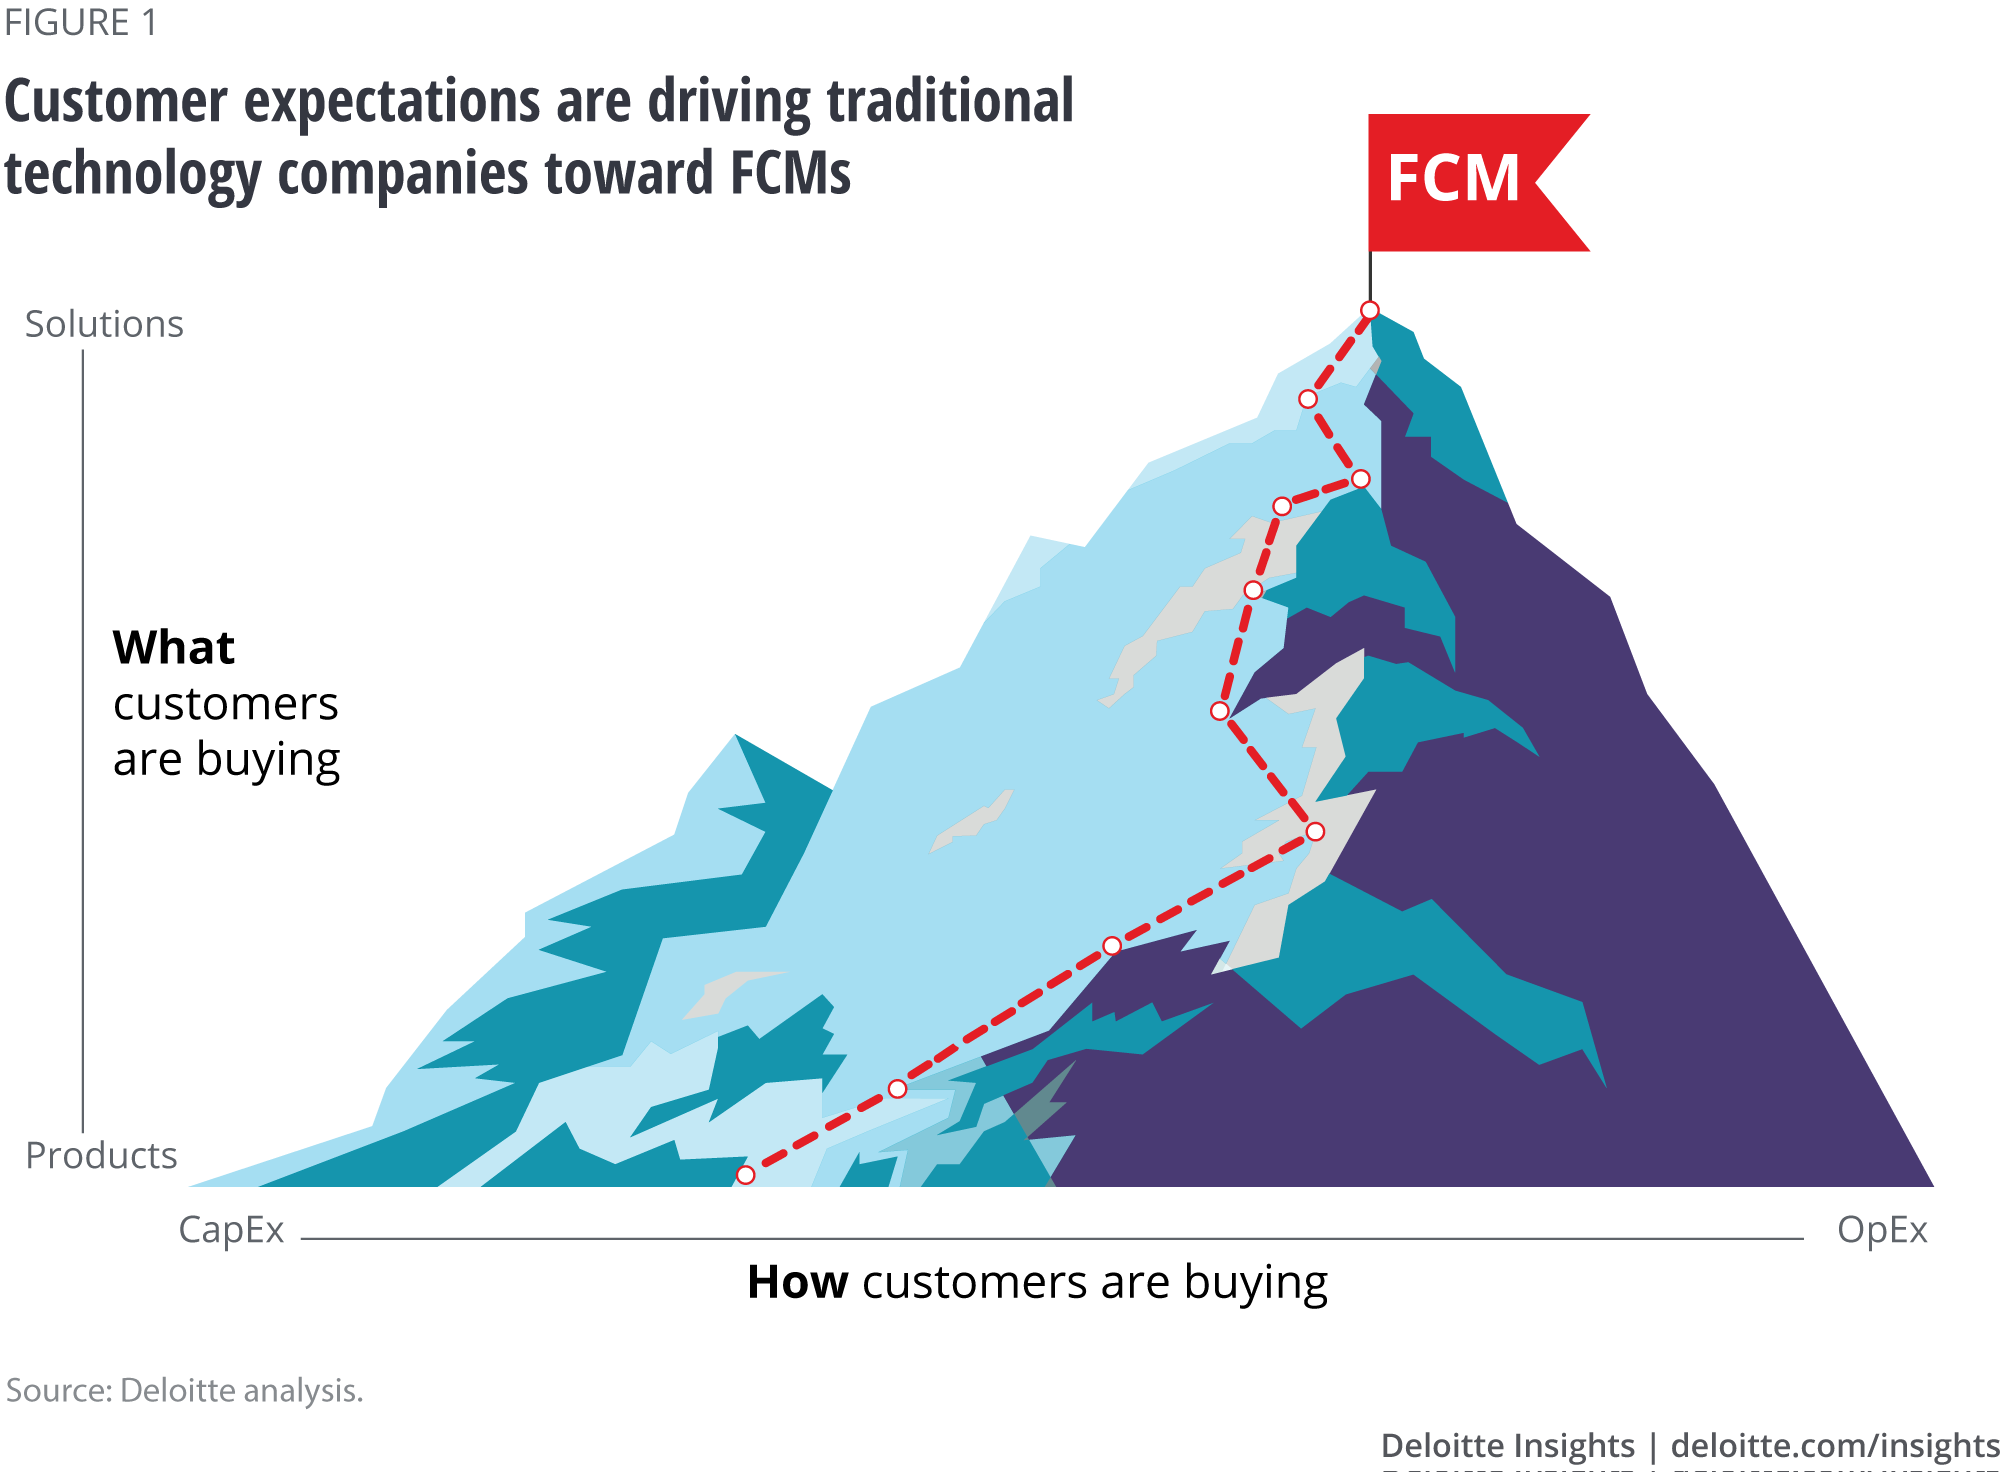 Customer expectations are driving traditional technology companies toward FCMs